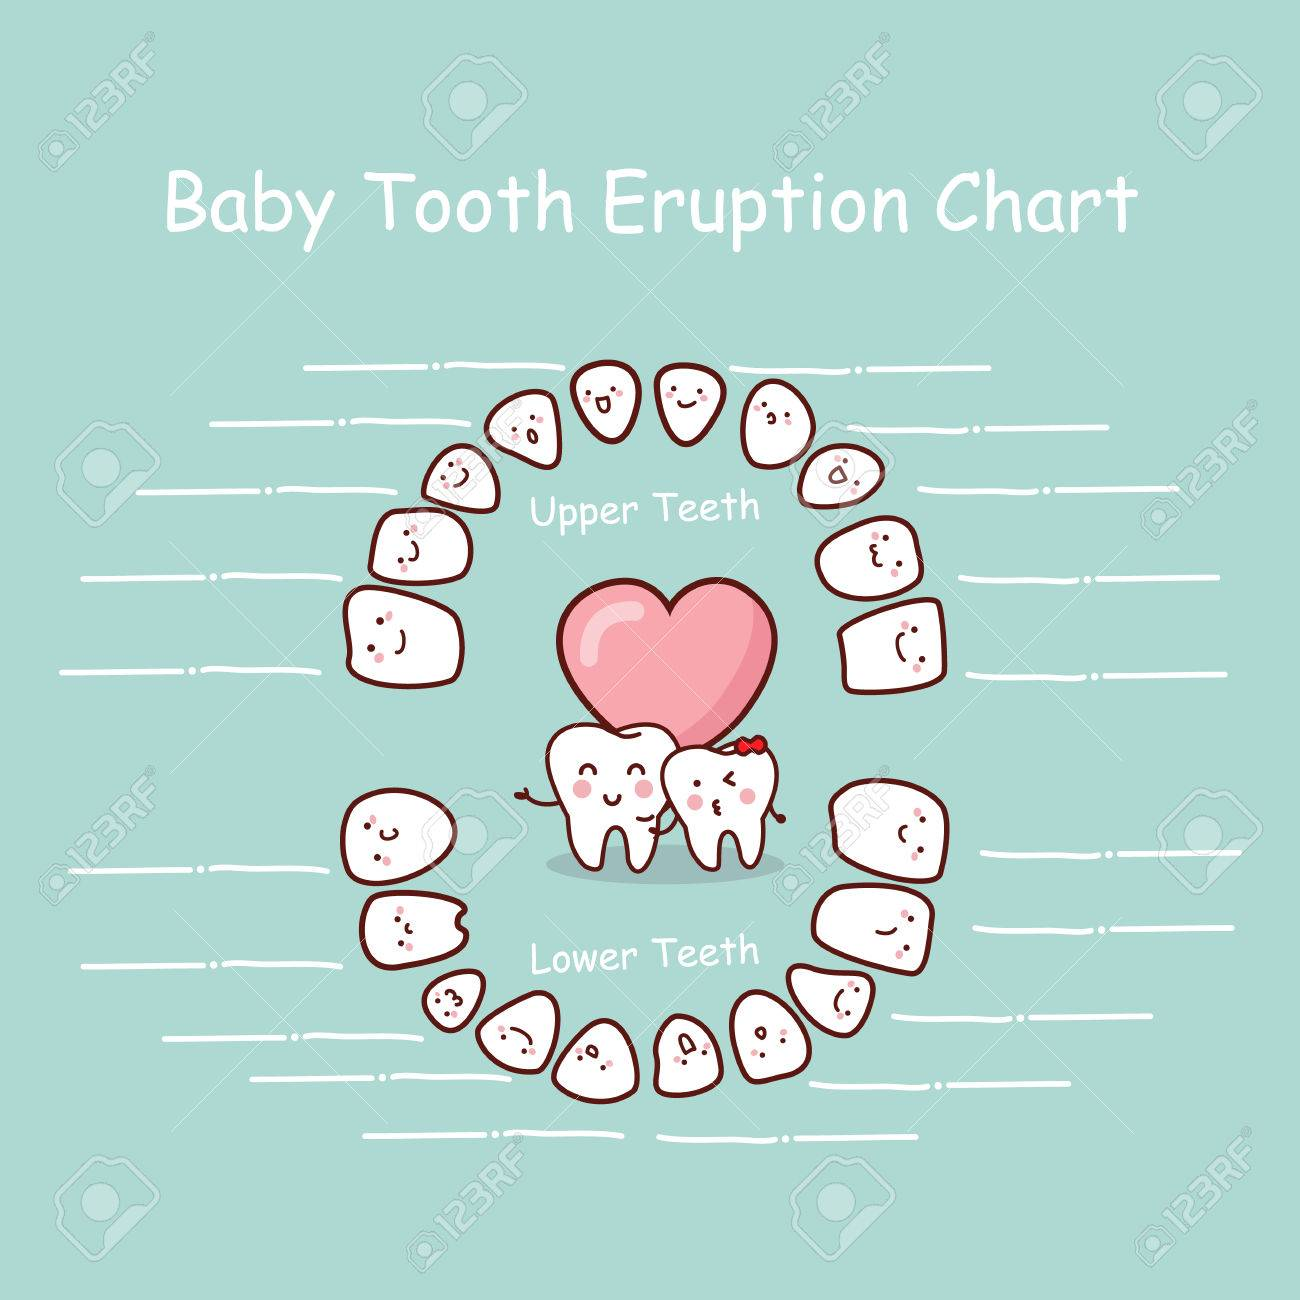 Baby Tooth Chart Eruption Record, Great For Health Dental Care ...